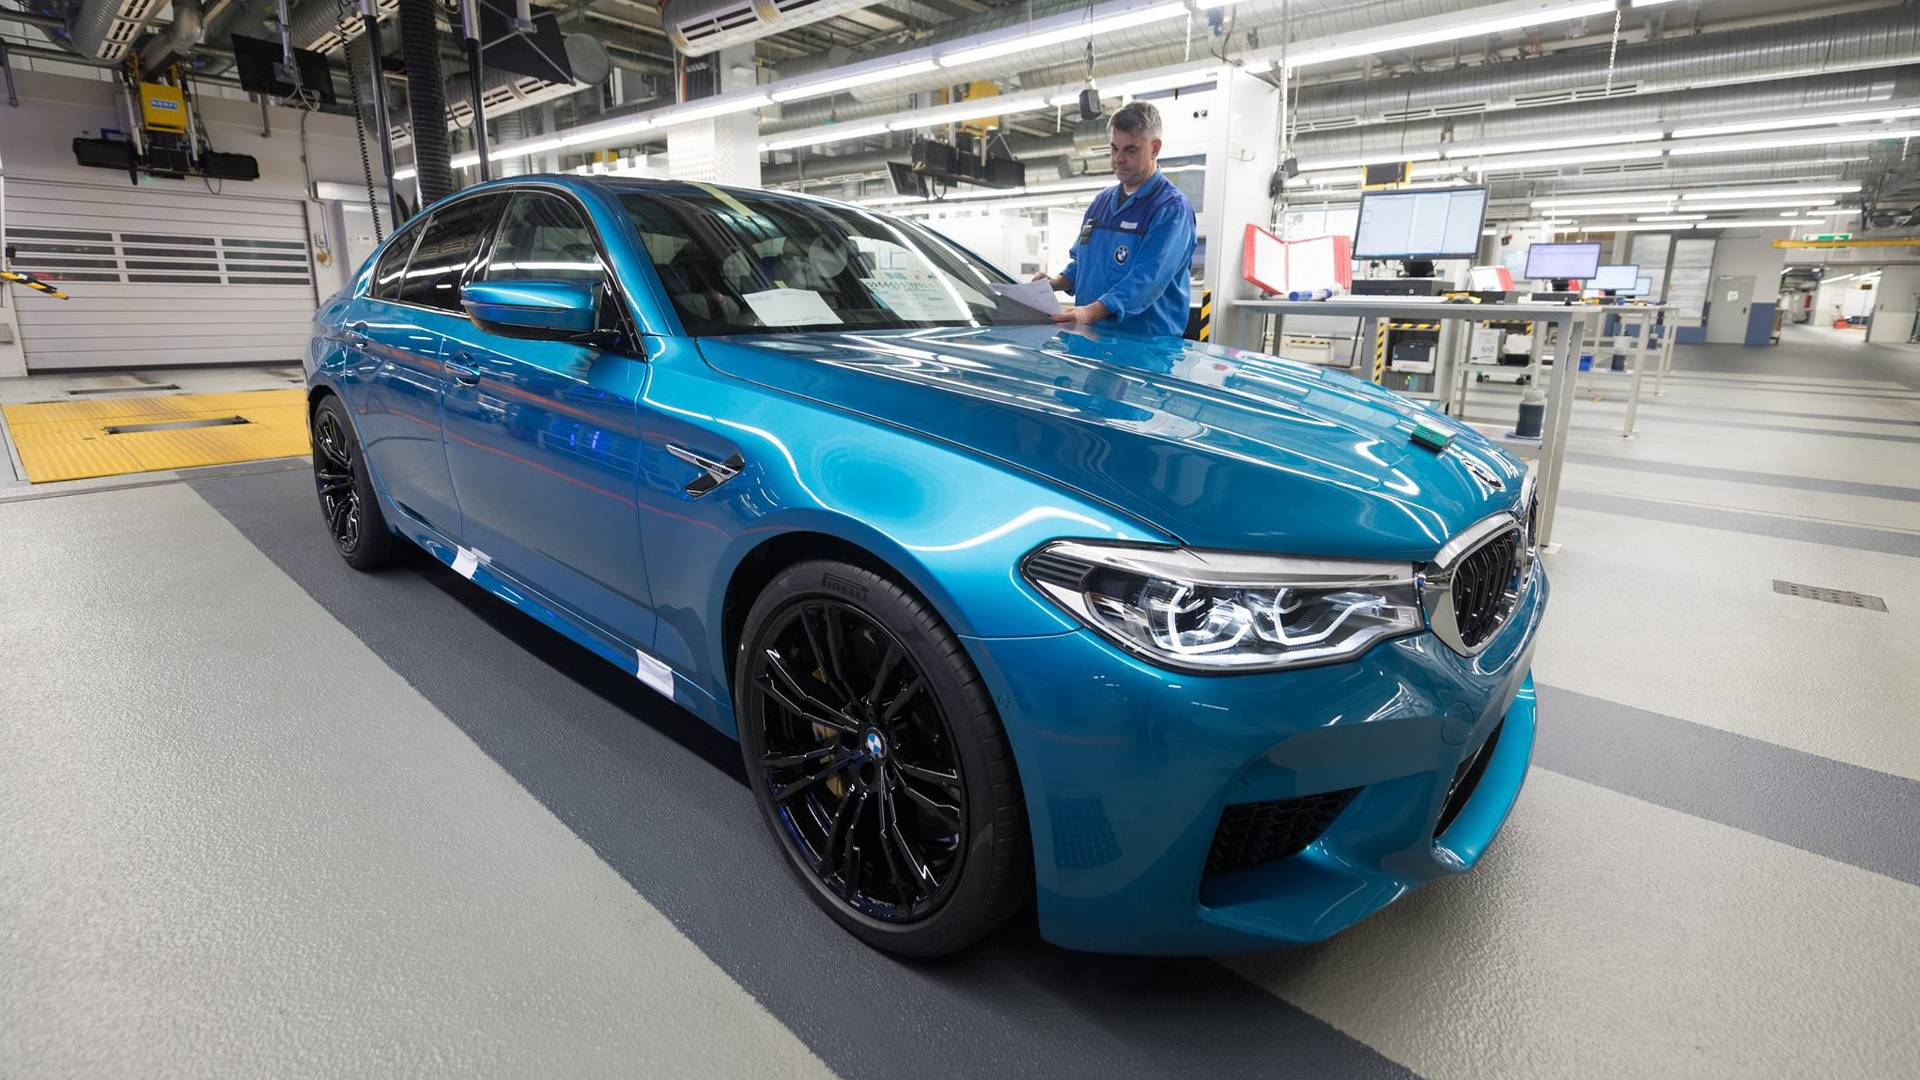 2018 Bmw M5 Finally Goes Into Production In Germany